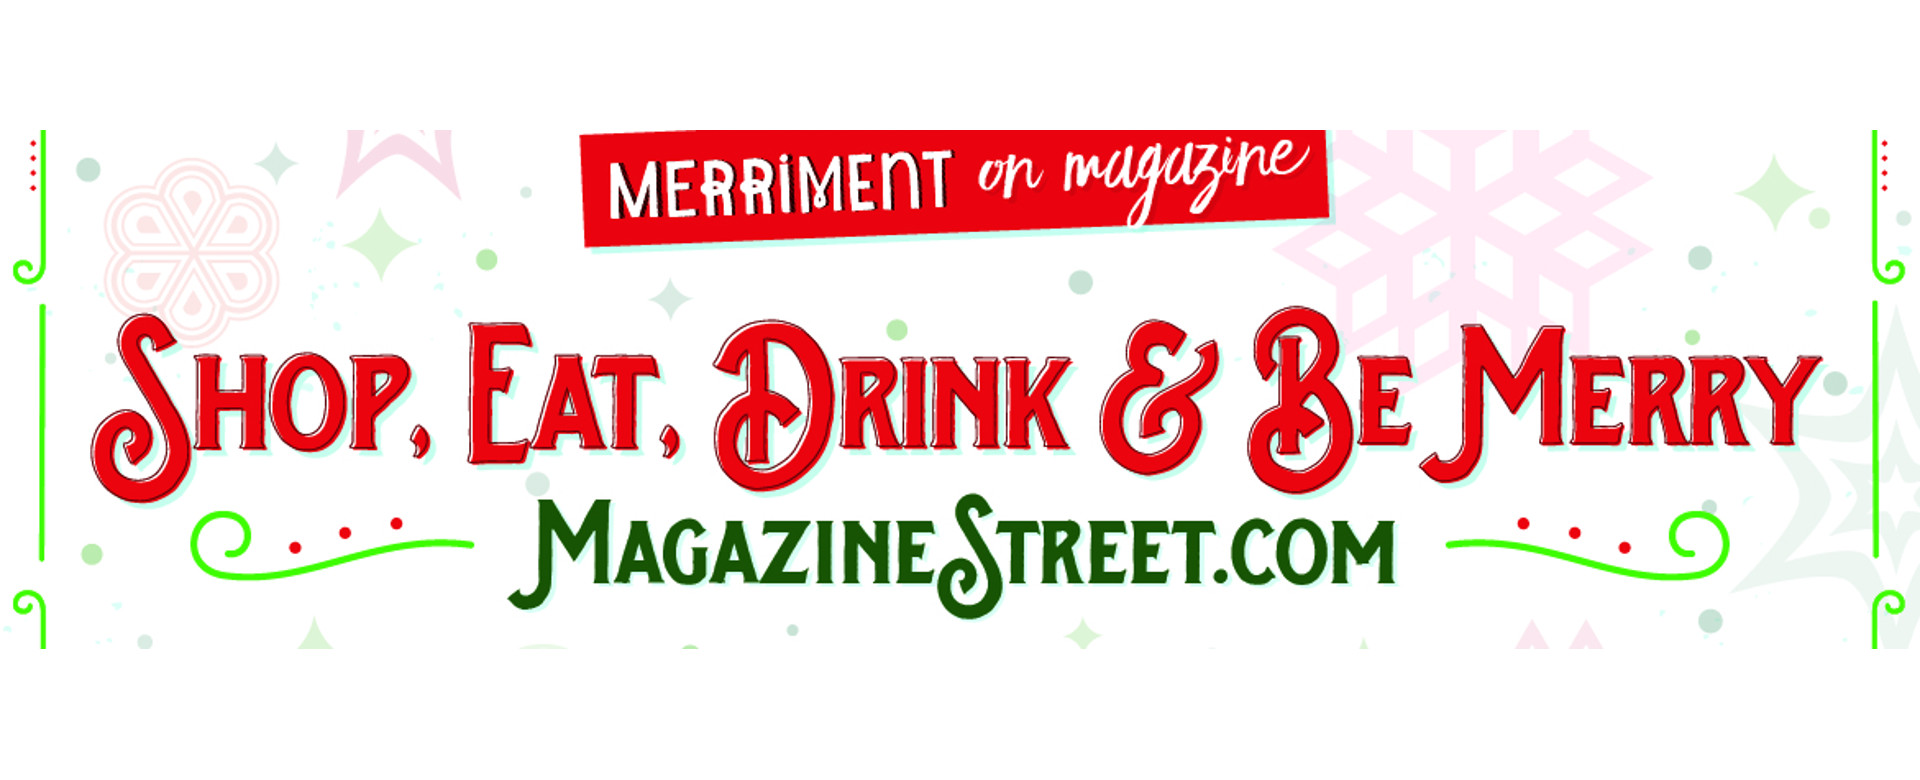 Merriment on Magazine